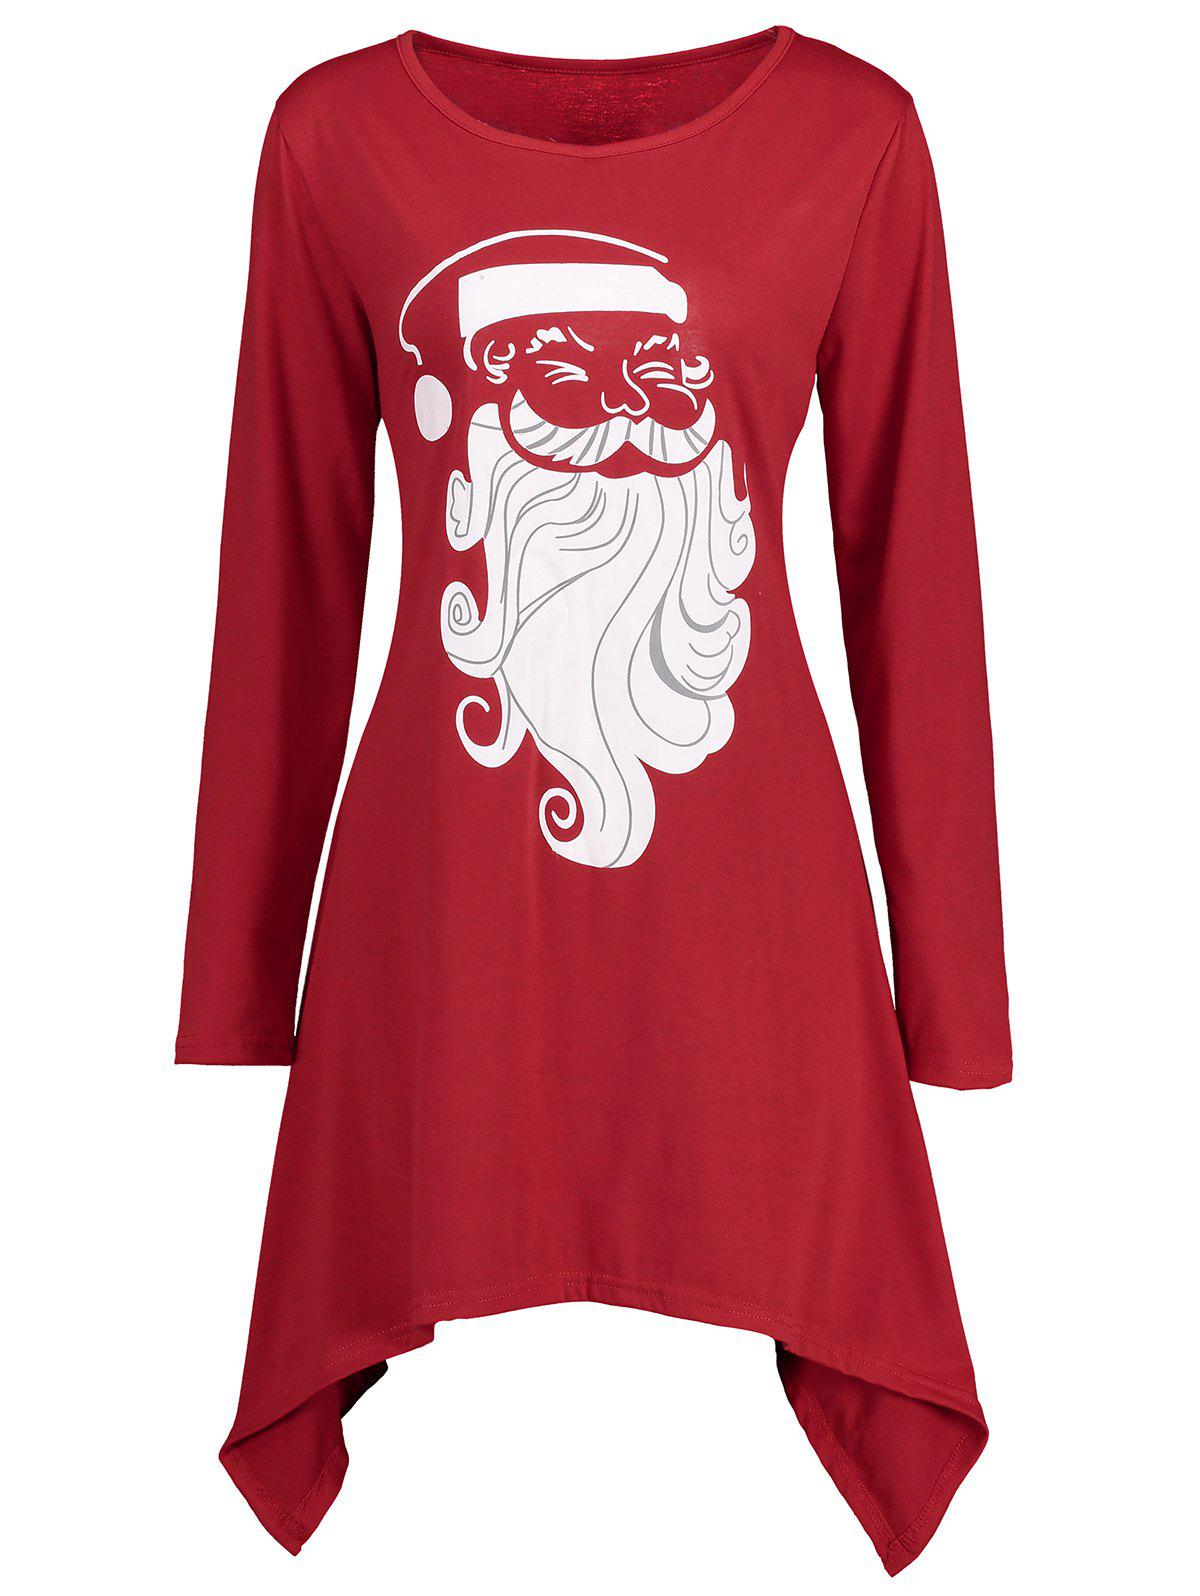 Christmas Santa Claus Asymmetrical Longline TeeWOMEN<br><br>Size: L; Color: RED; Material: Cotton,Polyester; Shirt Length: Long; Sleeve Length: Full; Collar: Round Neck; Style: Casual; Pattern Type: Print; Season: Fall,Spring; Weight: 0.3500kg; Package Contents: 1 x T-shirt;